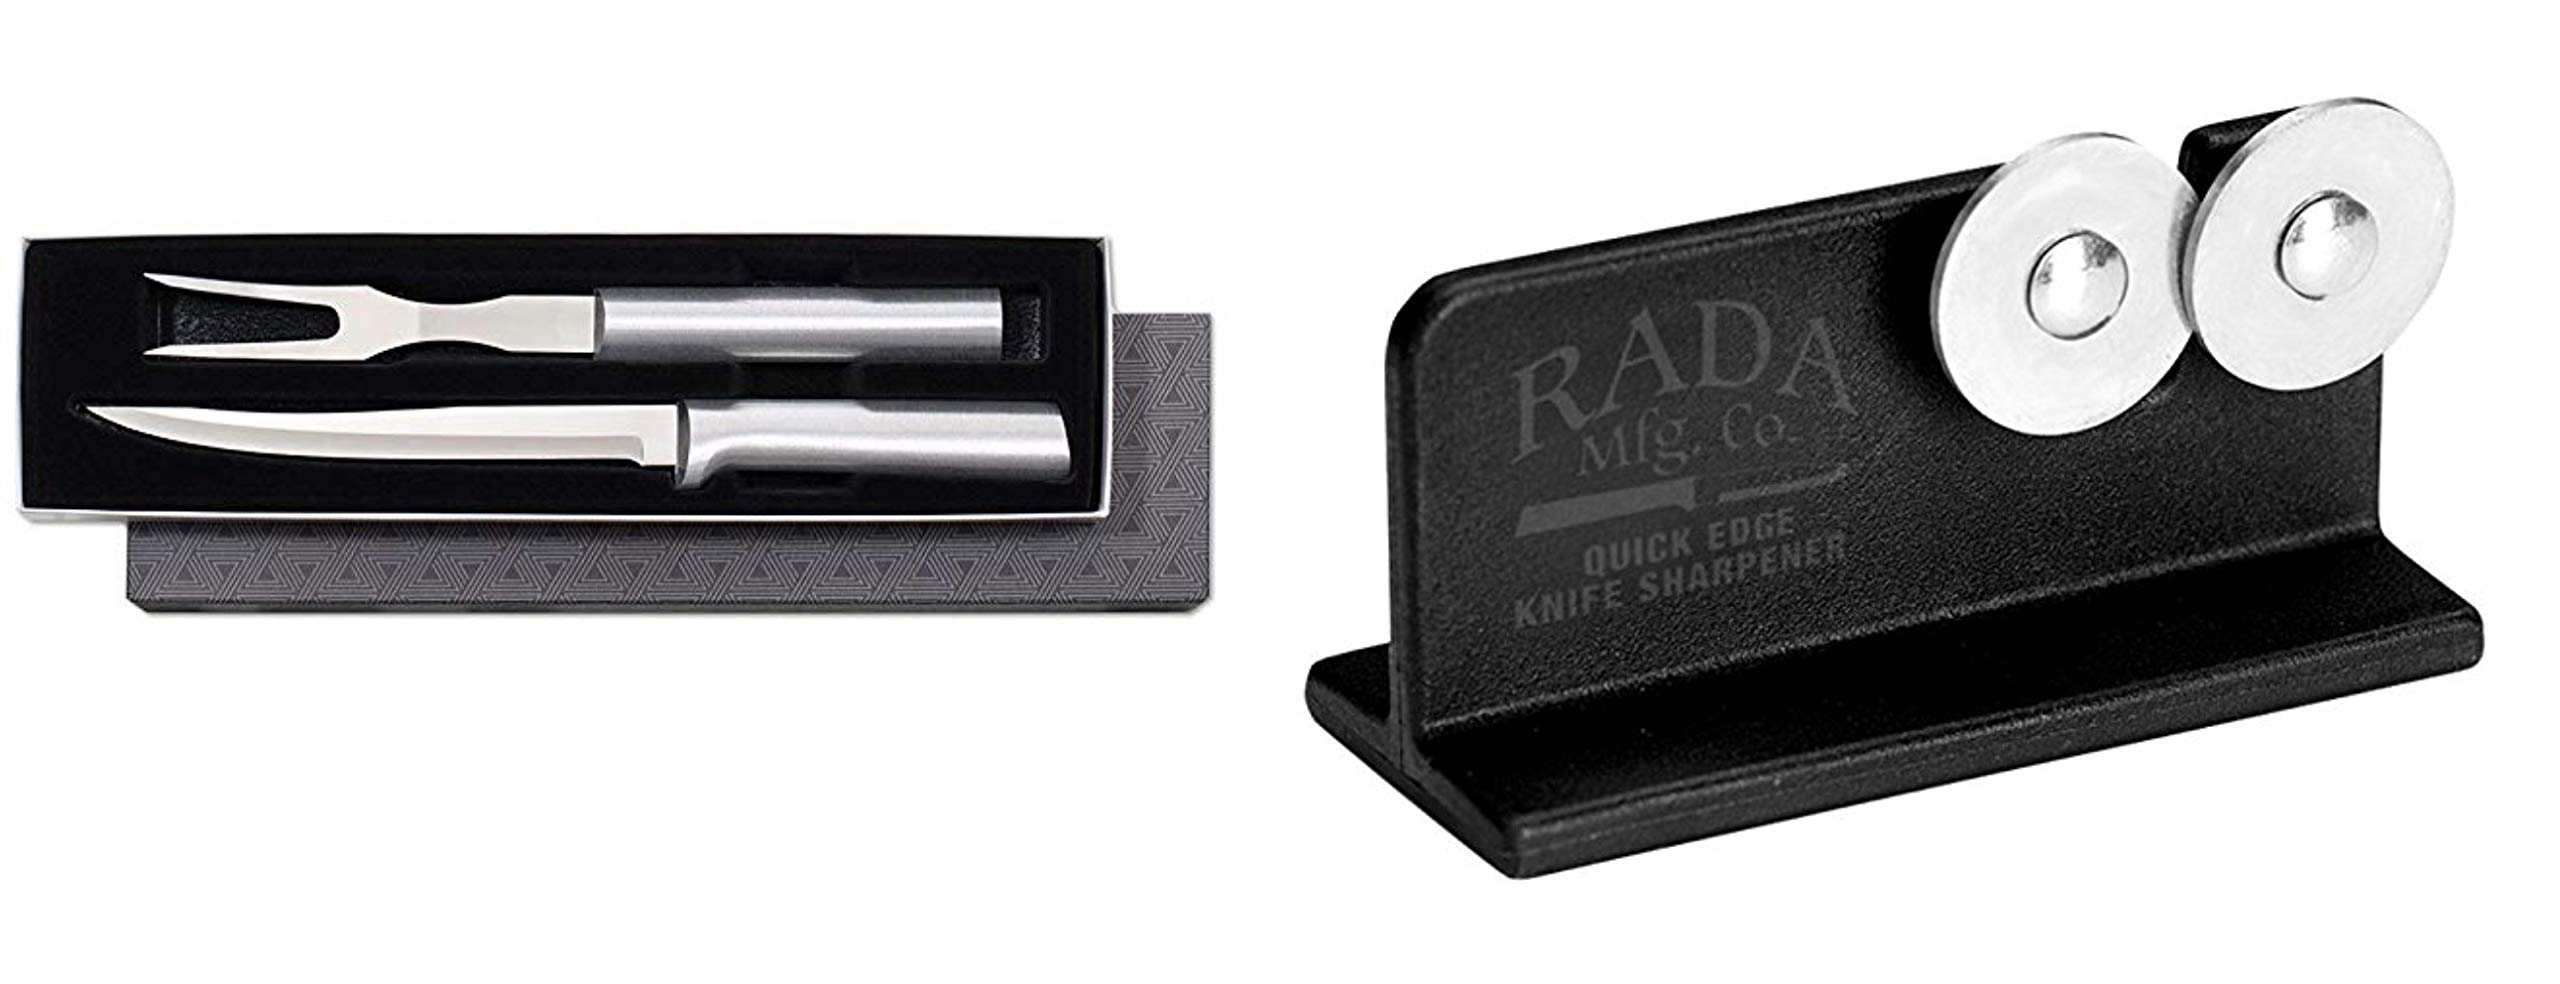 Rada Cutlery 2-Piece Carving Knife & Fork Set PLUS Rada Quick Edge Knife Sharpener